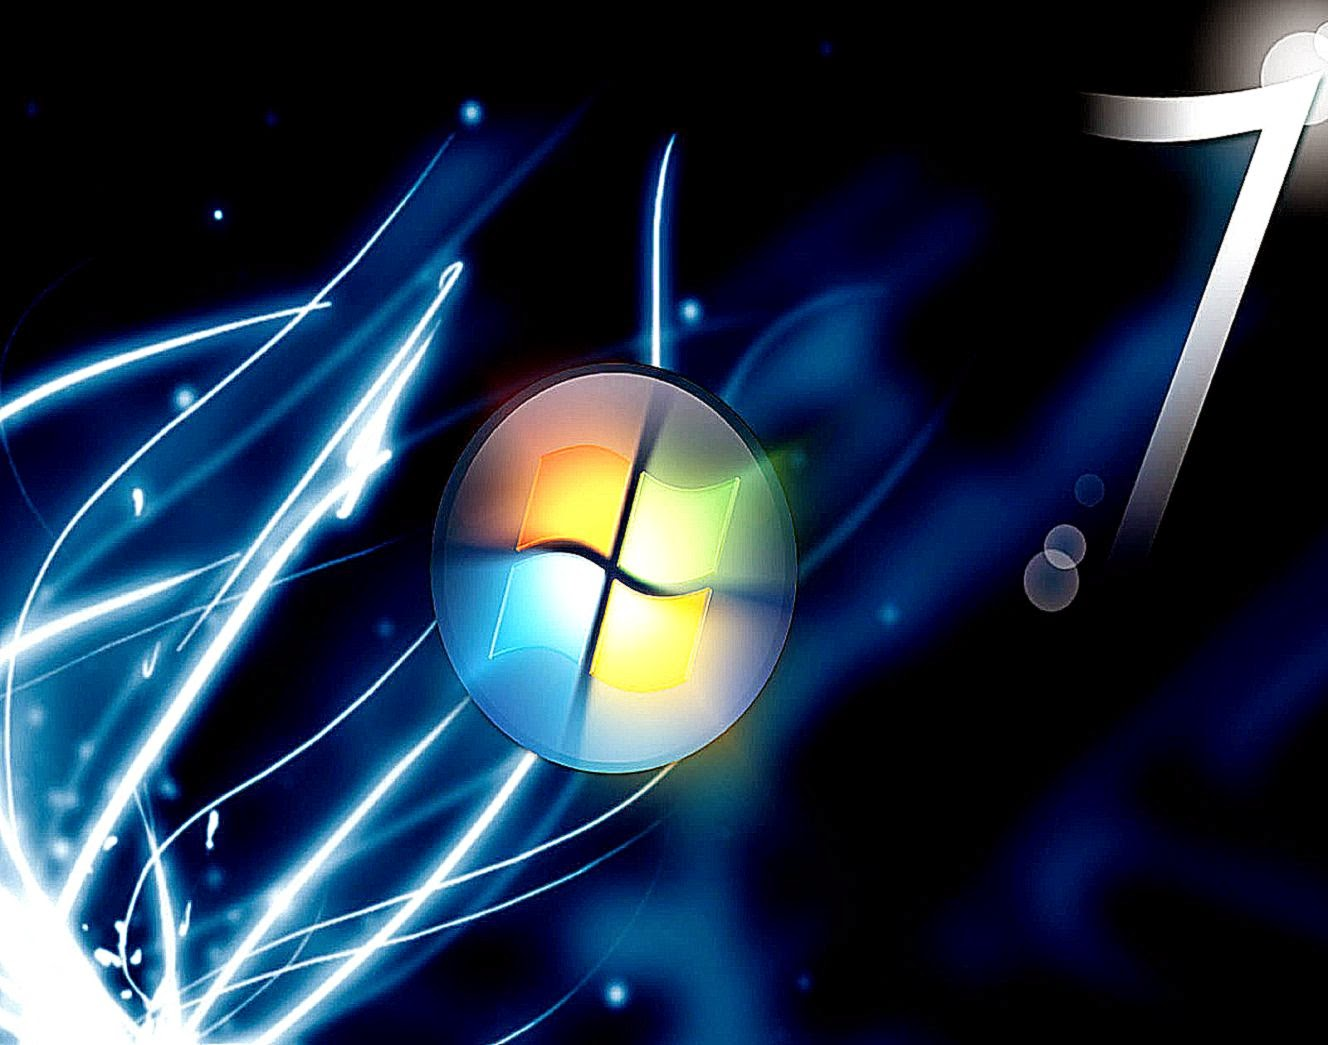 Free Download Animated Wallpapers Windows 7 Wallpapers Background 1328x1045 For Your Desktop Mobile Tablet Explore 50 Animated Desktop Wallpaper Windows 7 3d Moving Wallpapers Free Animated Wallpapers Windows 10 Moving Desktop Wallpaper